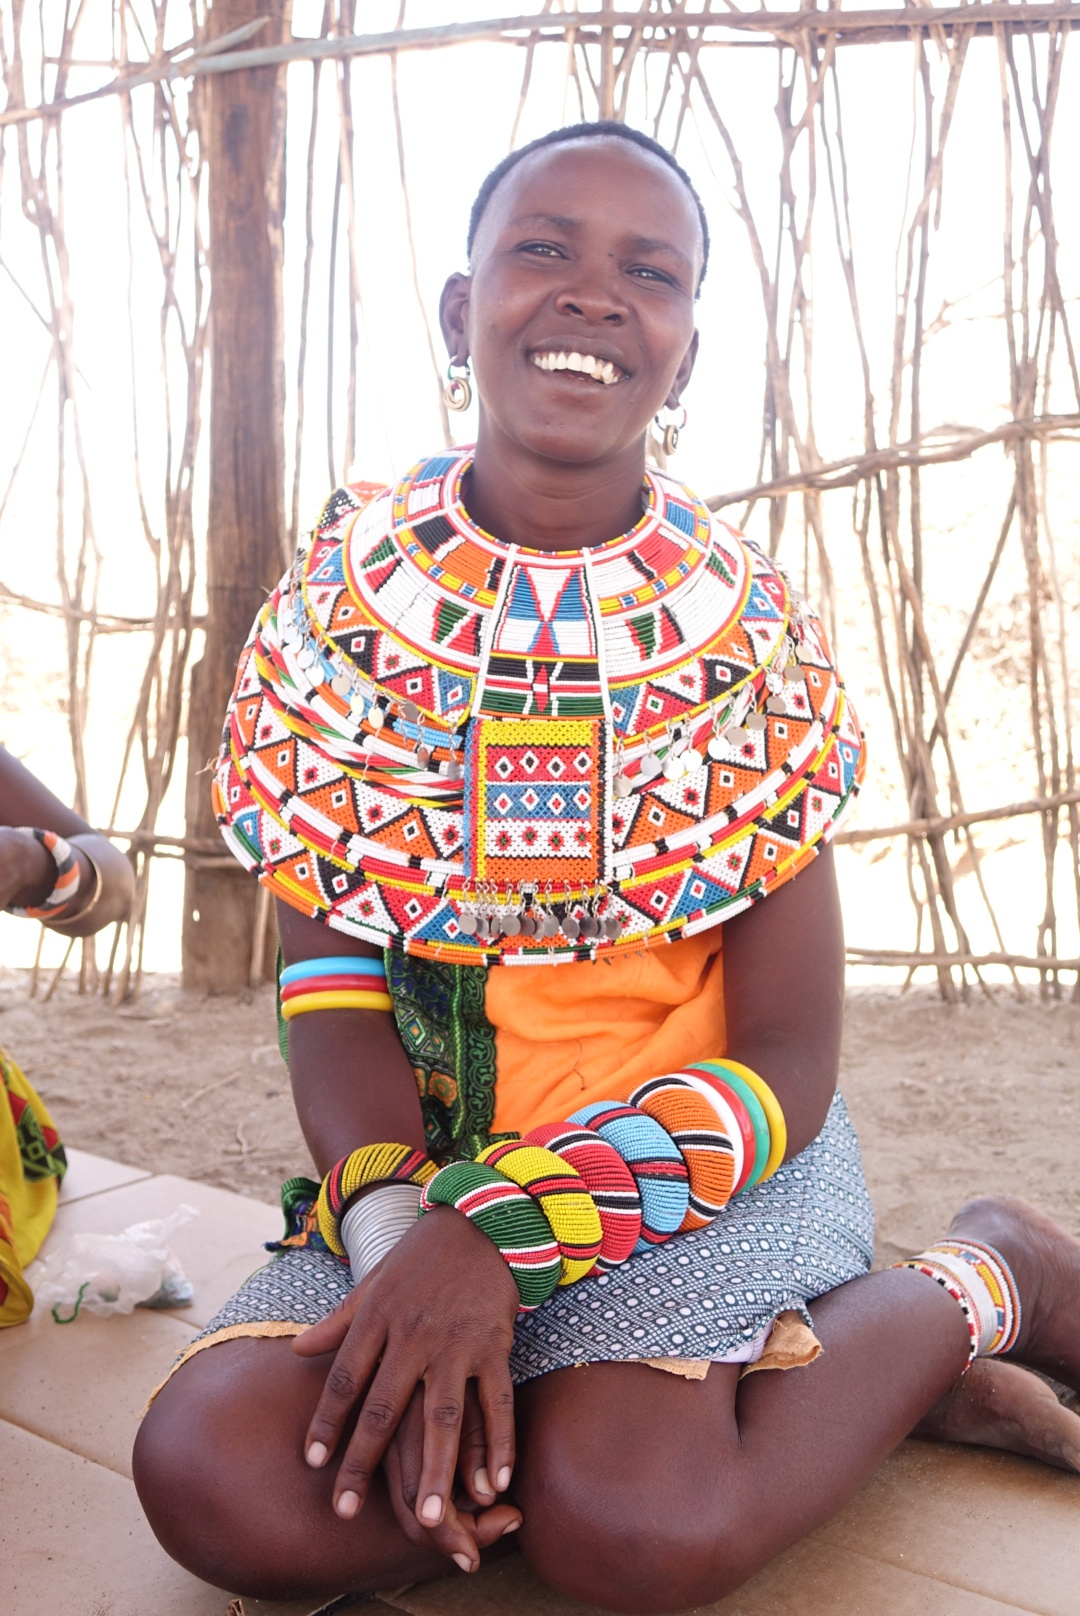 Alice is a skilled beadwork jewelry artist. The traditional necklaces she is wearing here can take anywhere from 2 - 4 months to make. The bracelets, cuffs, and bangles take around 3 weeks. - SUPPORT ARTISTS. THINK GLOBAL. EMPOWER WOMEN.